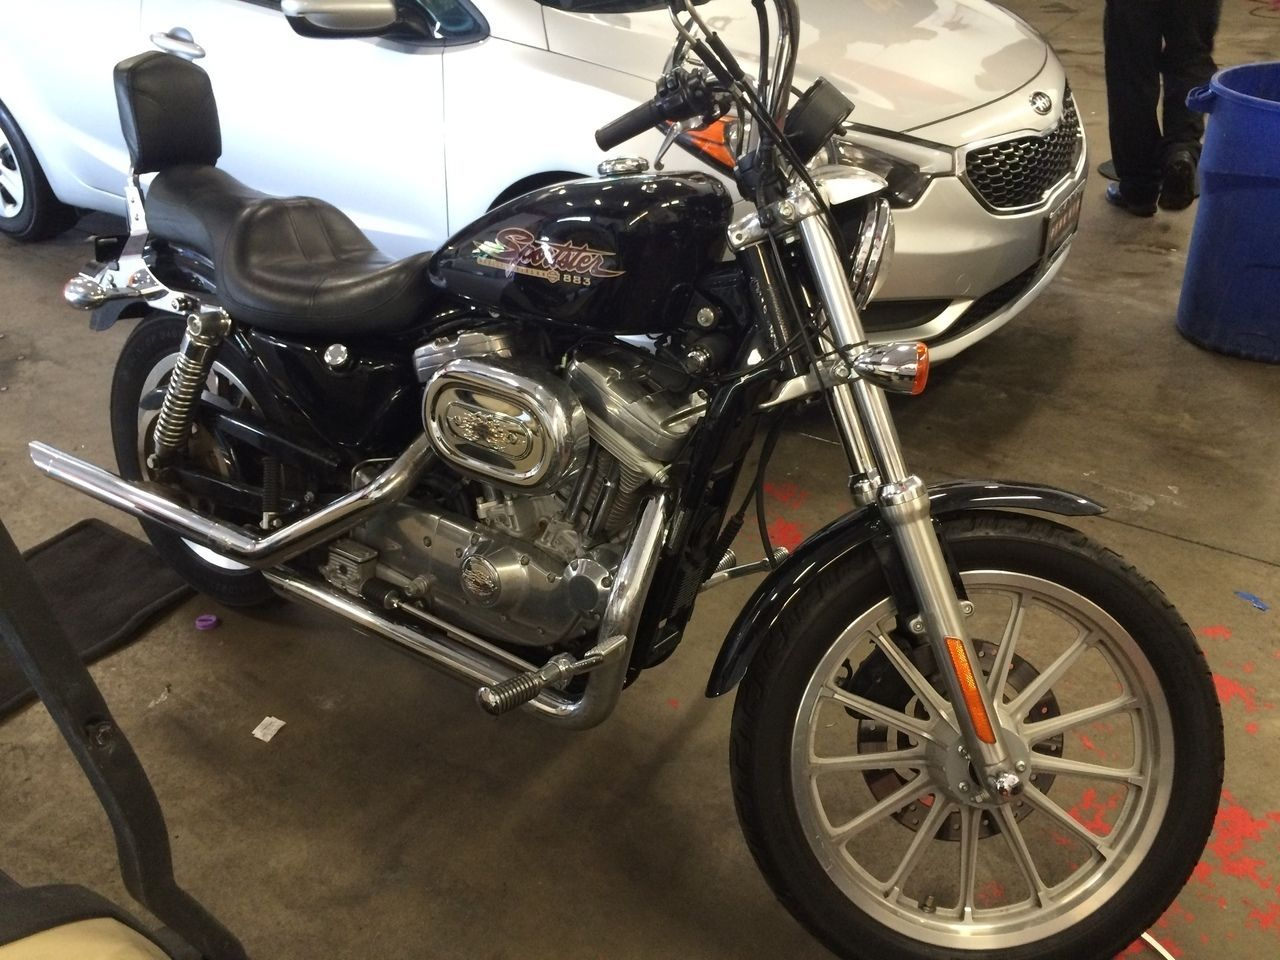 Check Out This 2001 Harley Davidson Sportster 883 Custom Listing In Littleton Co 80123 On Cycletrader Com It Is A Cruiser Harley Davidson Sportster 883 Harley Davidson Harley Davidson Sportster